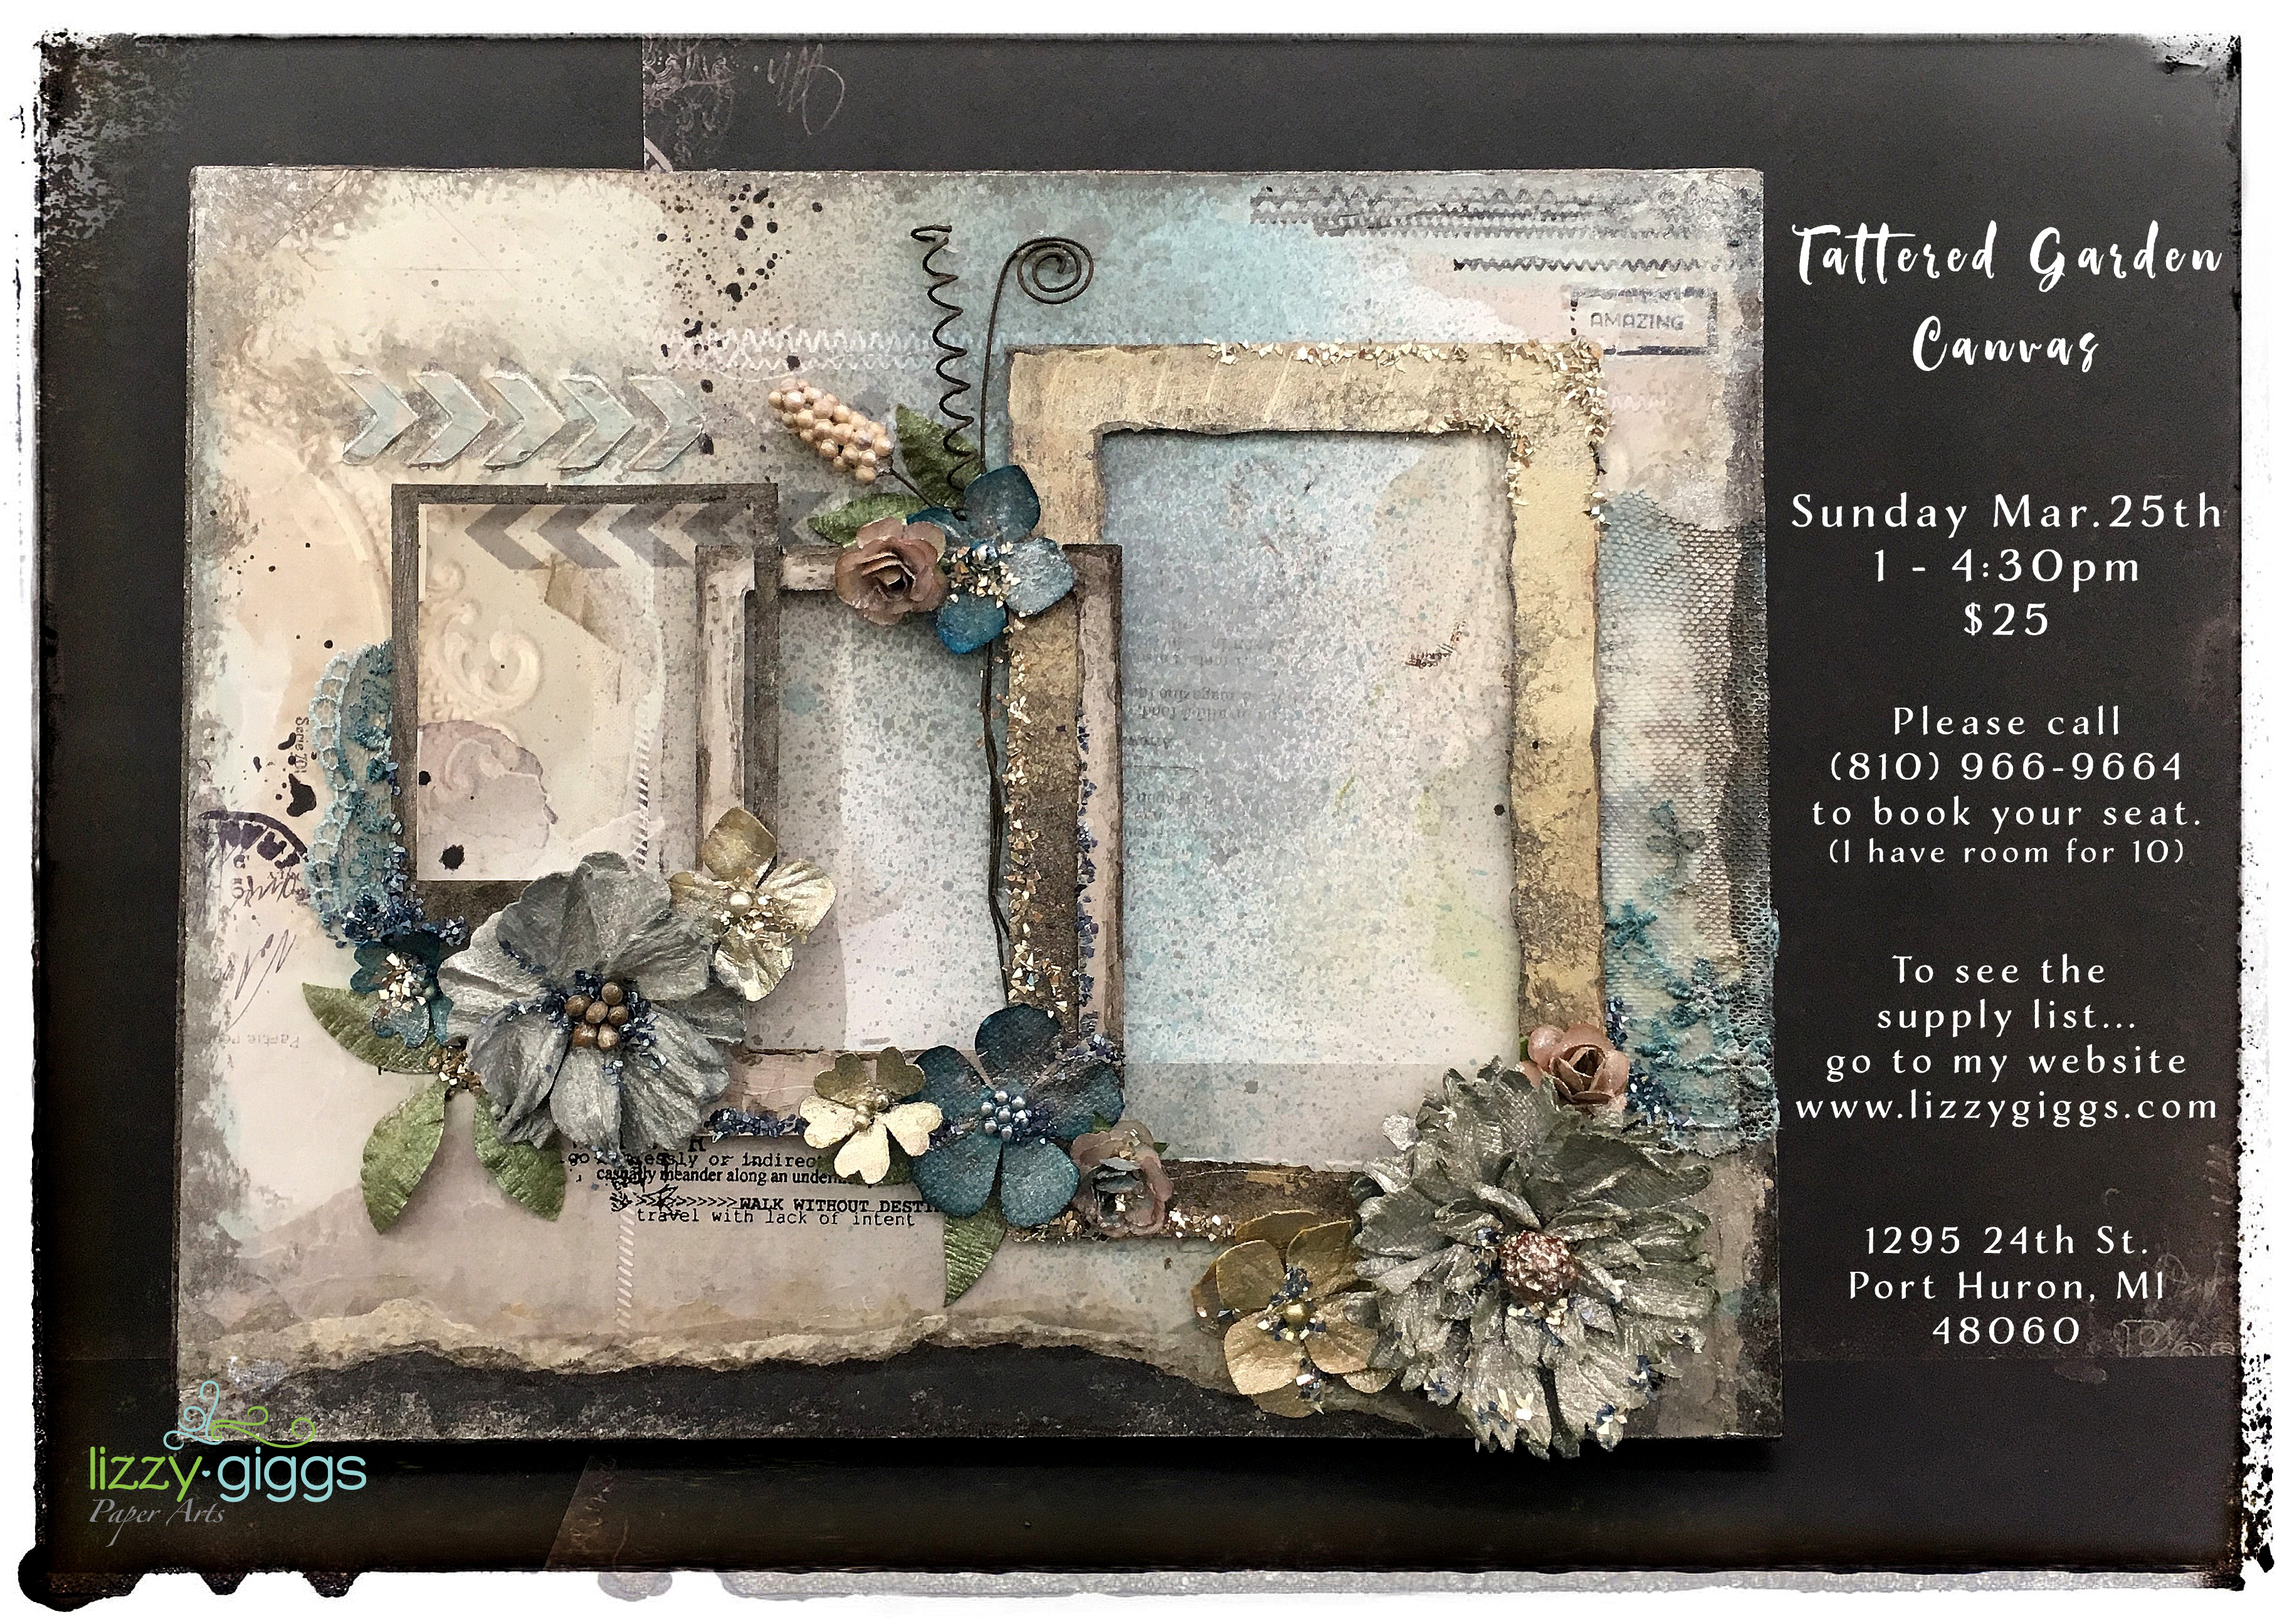 Tattered Garden Canvas fb